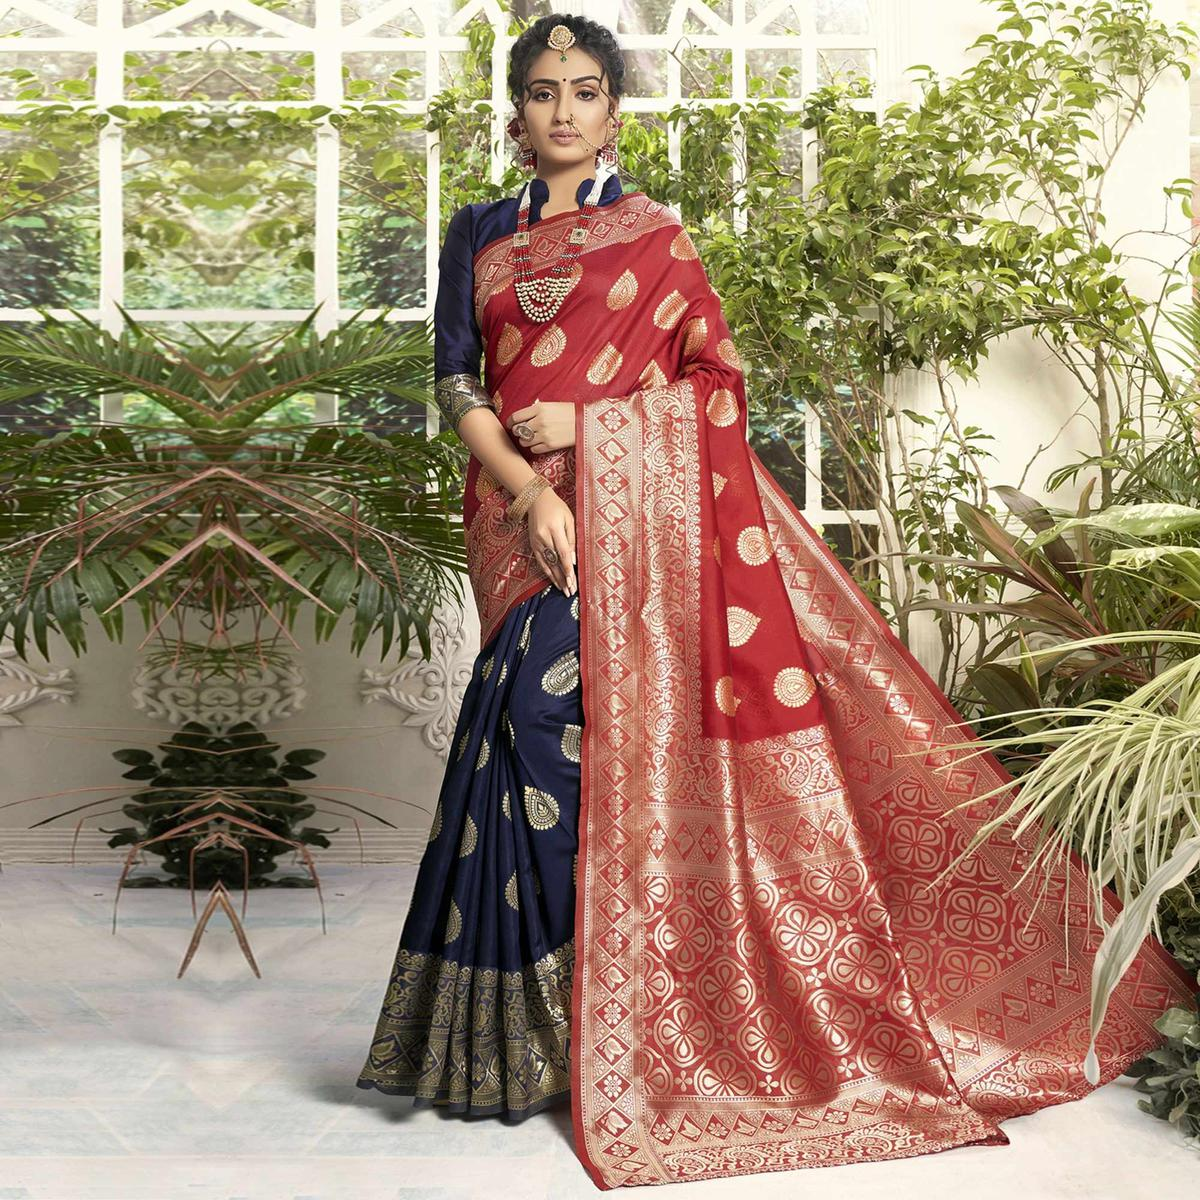 Triveni Navy Blue & Red Colored Jacquard Silk Party Wear Jacquard Woven Saree With Blouse Piece